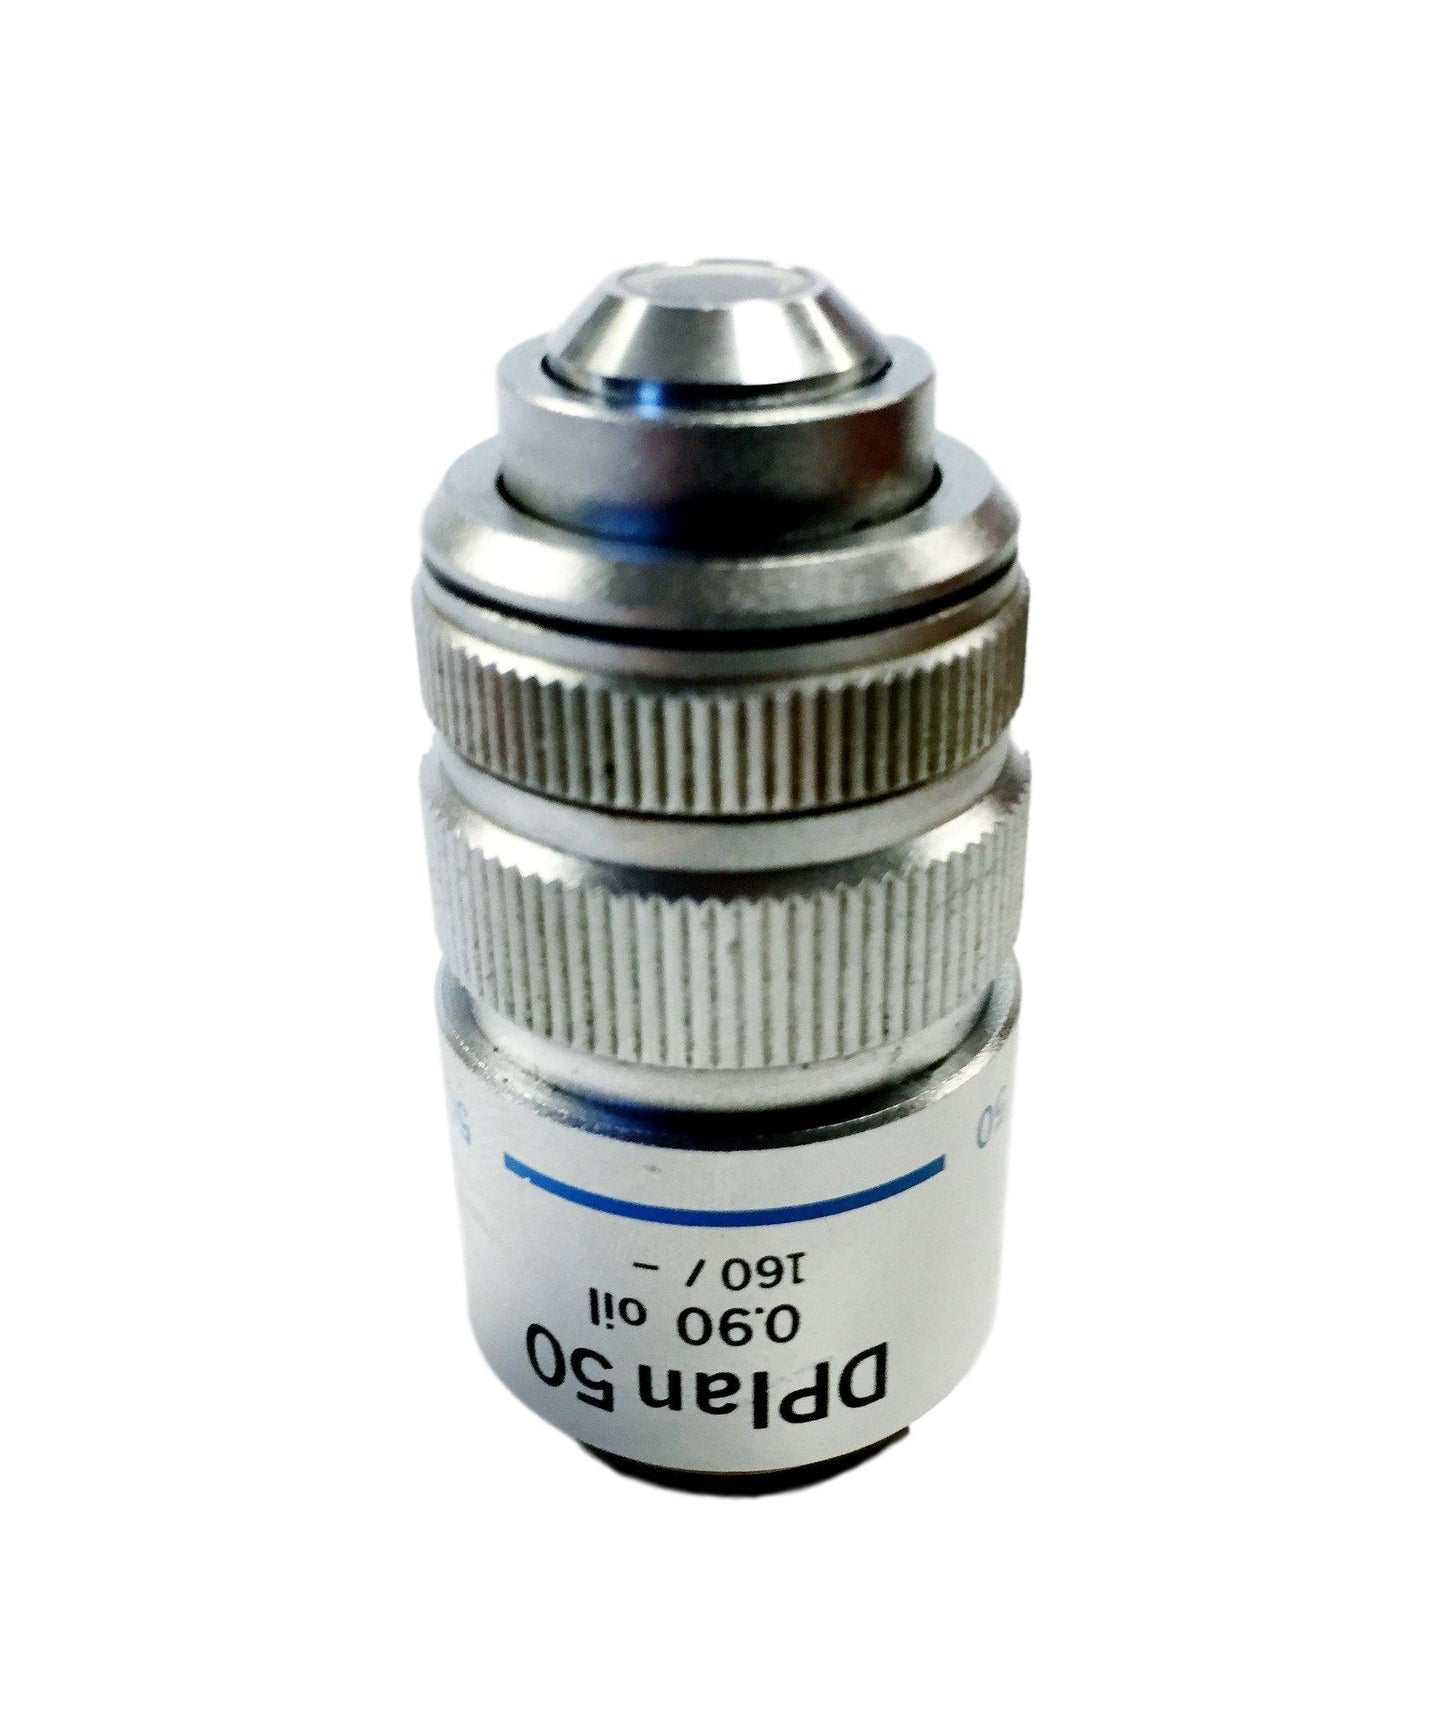 Microscope Objective